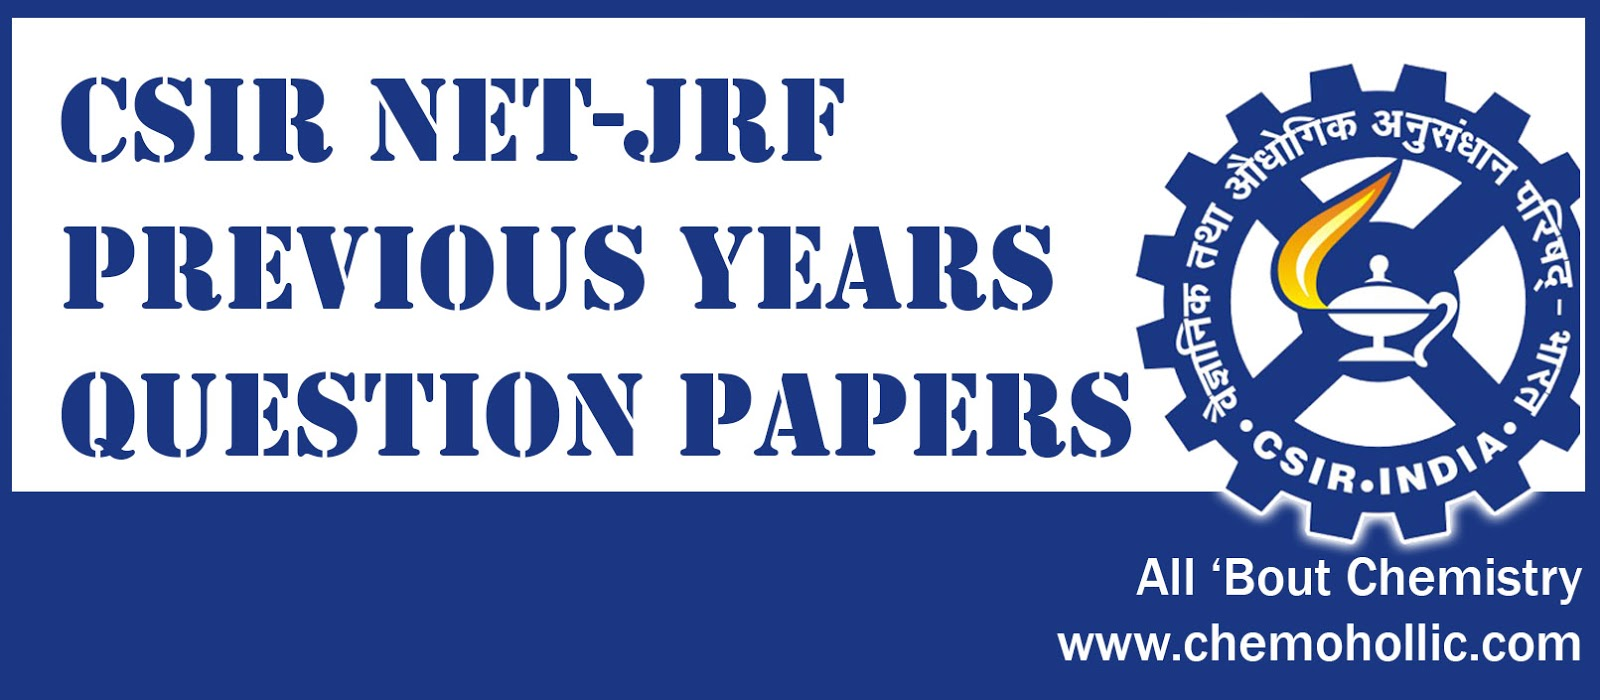 CSIR NET-JRF Previous Years Question Papers with Answer Key - All ...